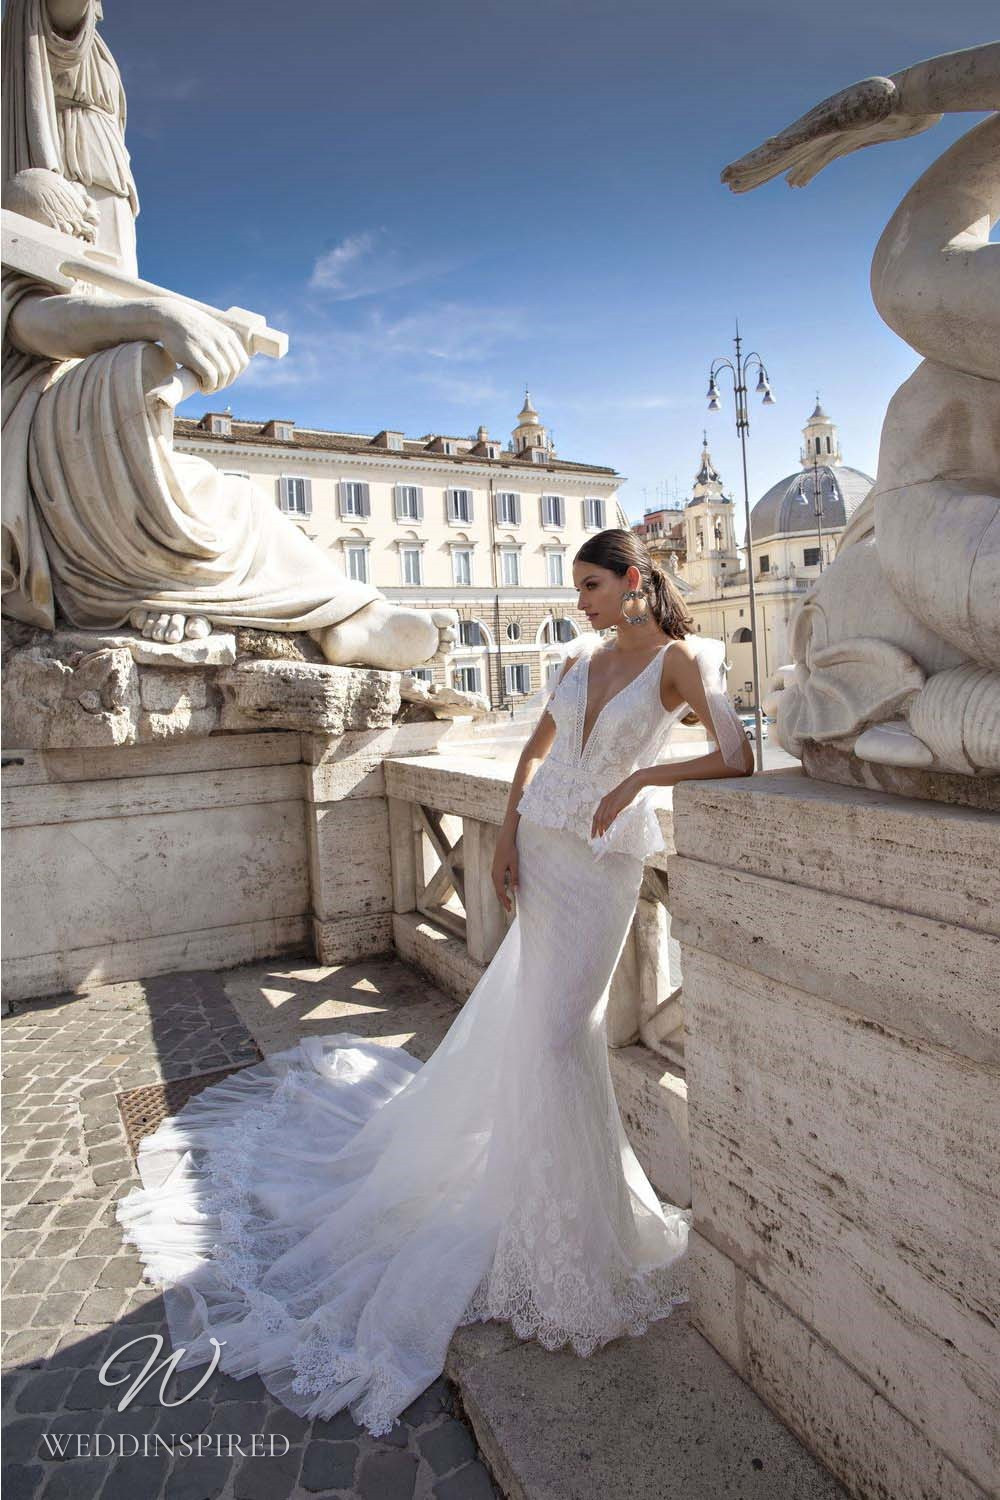 A Pinella Passaro lace mermaid wedding dress with a low v neckline and a train